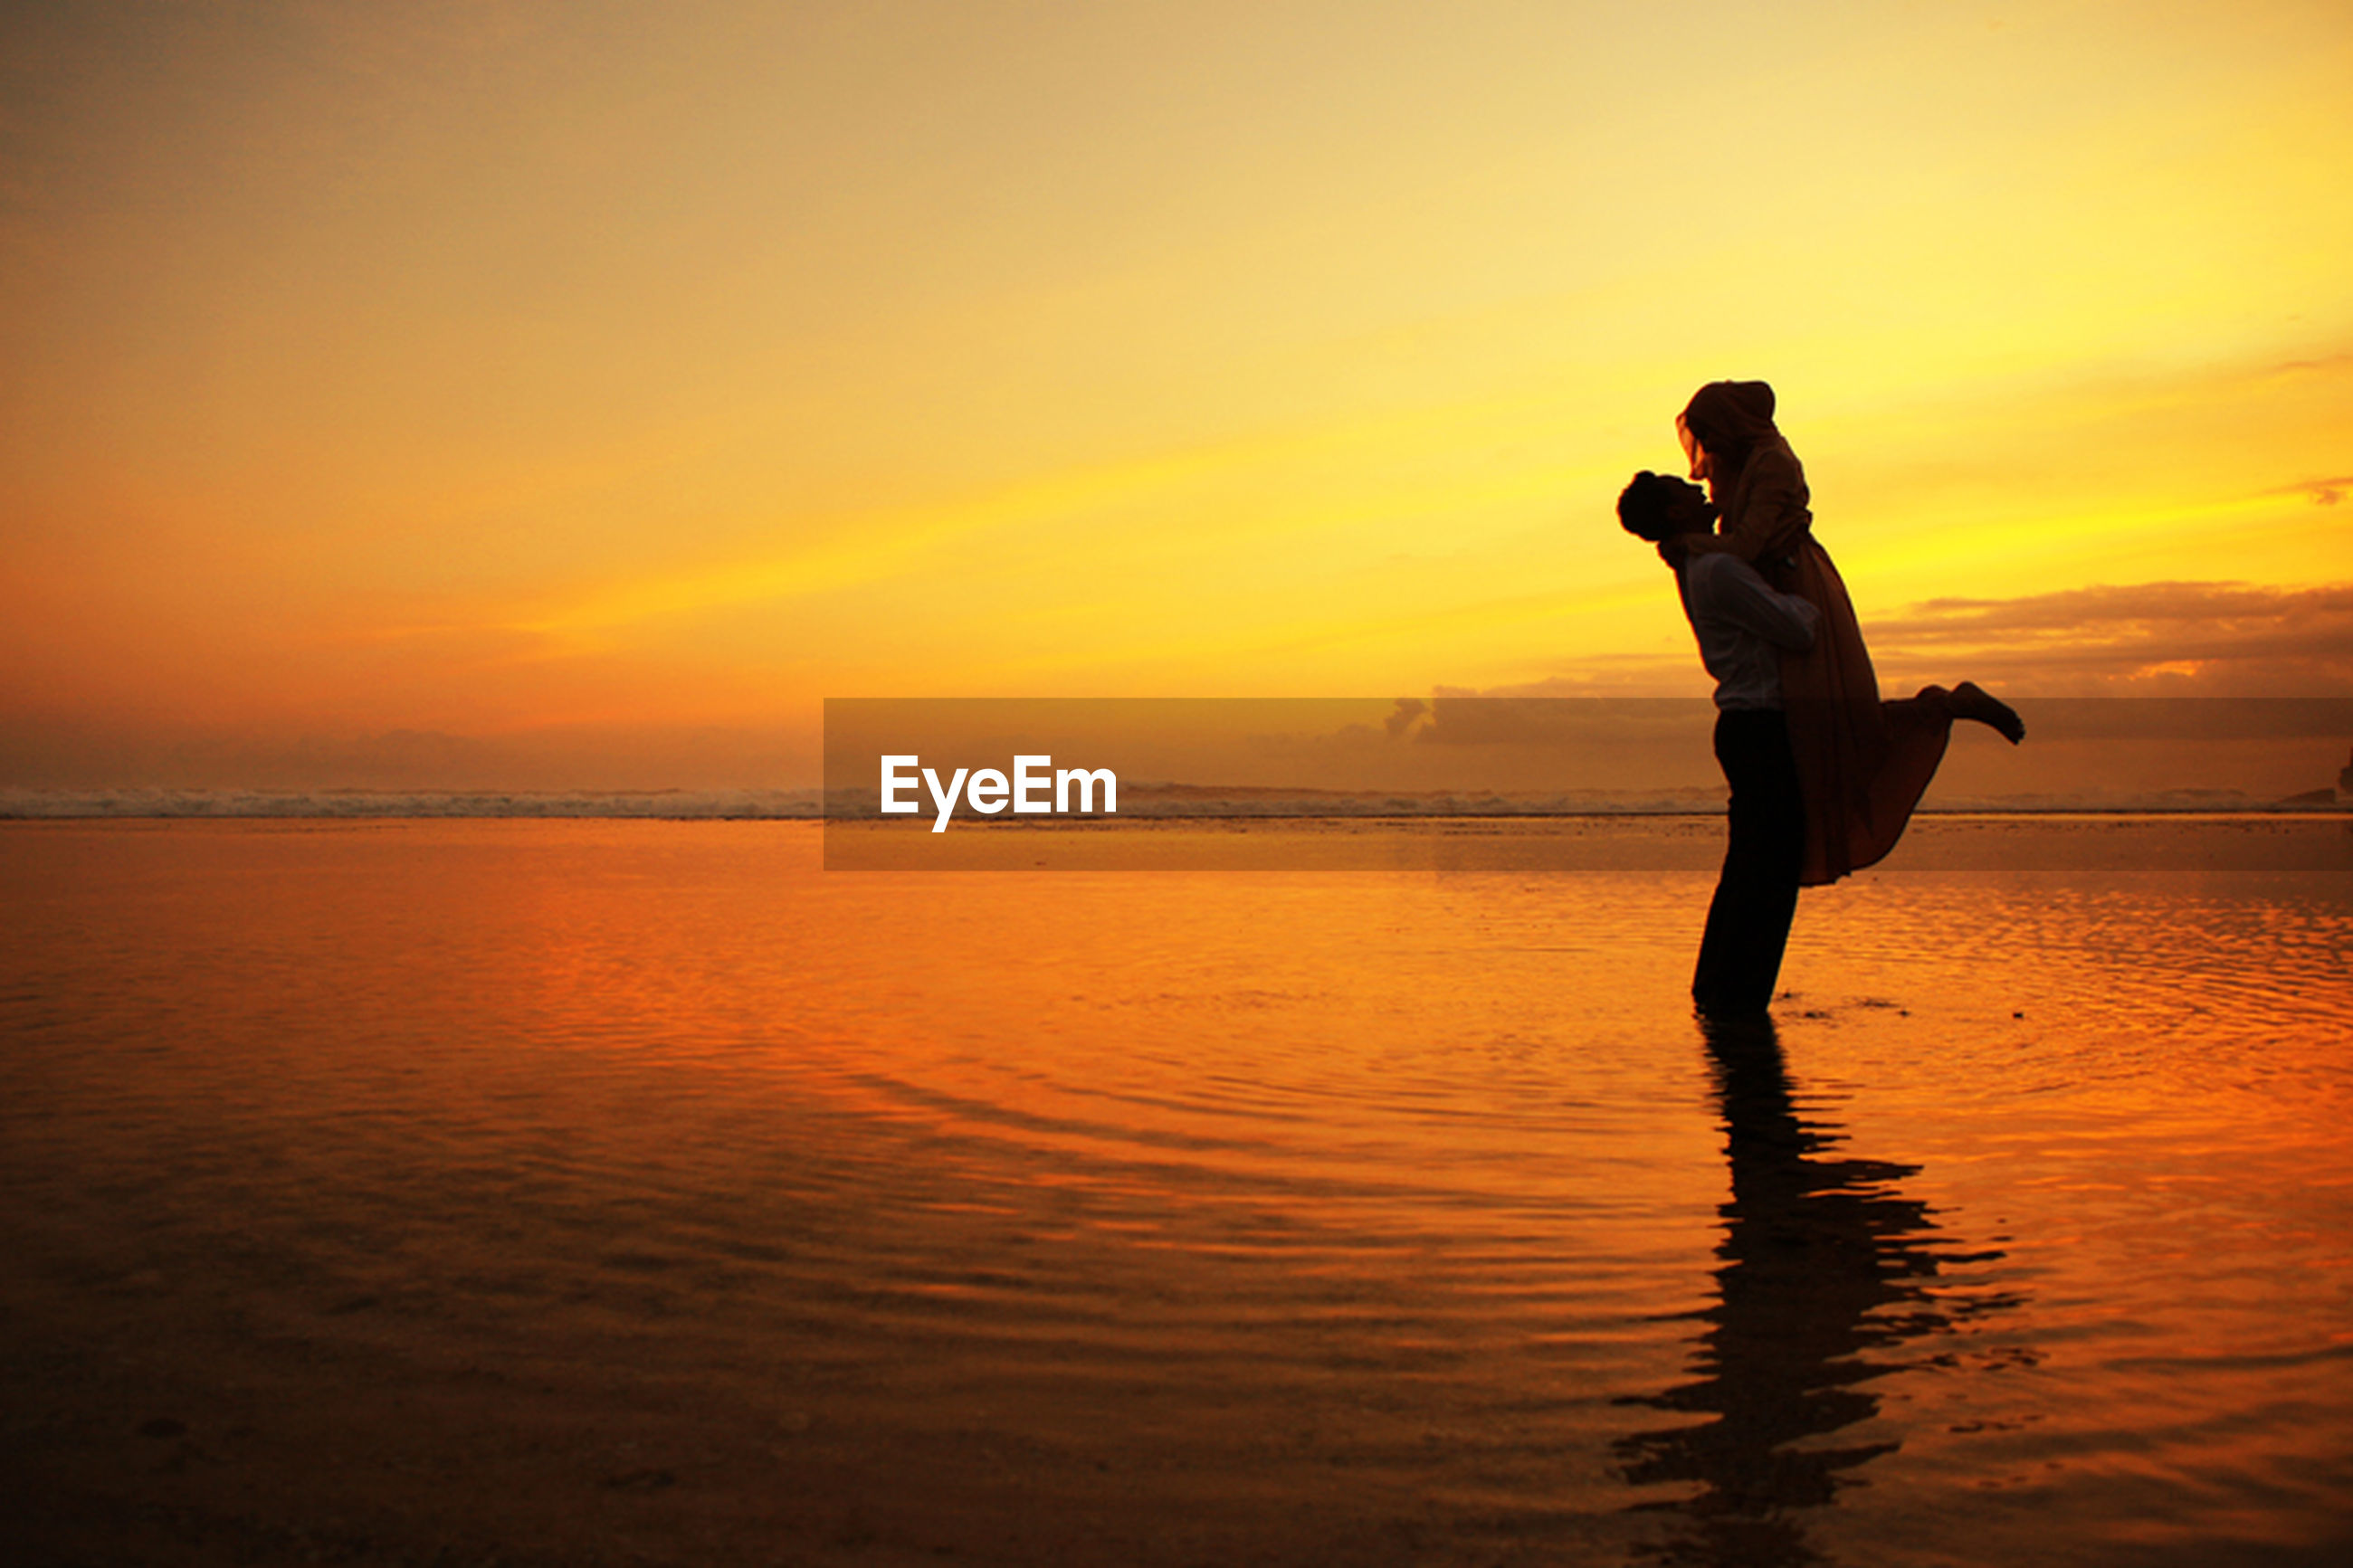 sunset, water, sea, silhouette, leisure activity, horizon over water, orange color, lifestyles, beach, sky, scenics, standing, vacations, tranquil scene, beauty in nature, reflection, tranquility, idyllic